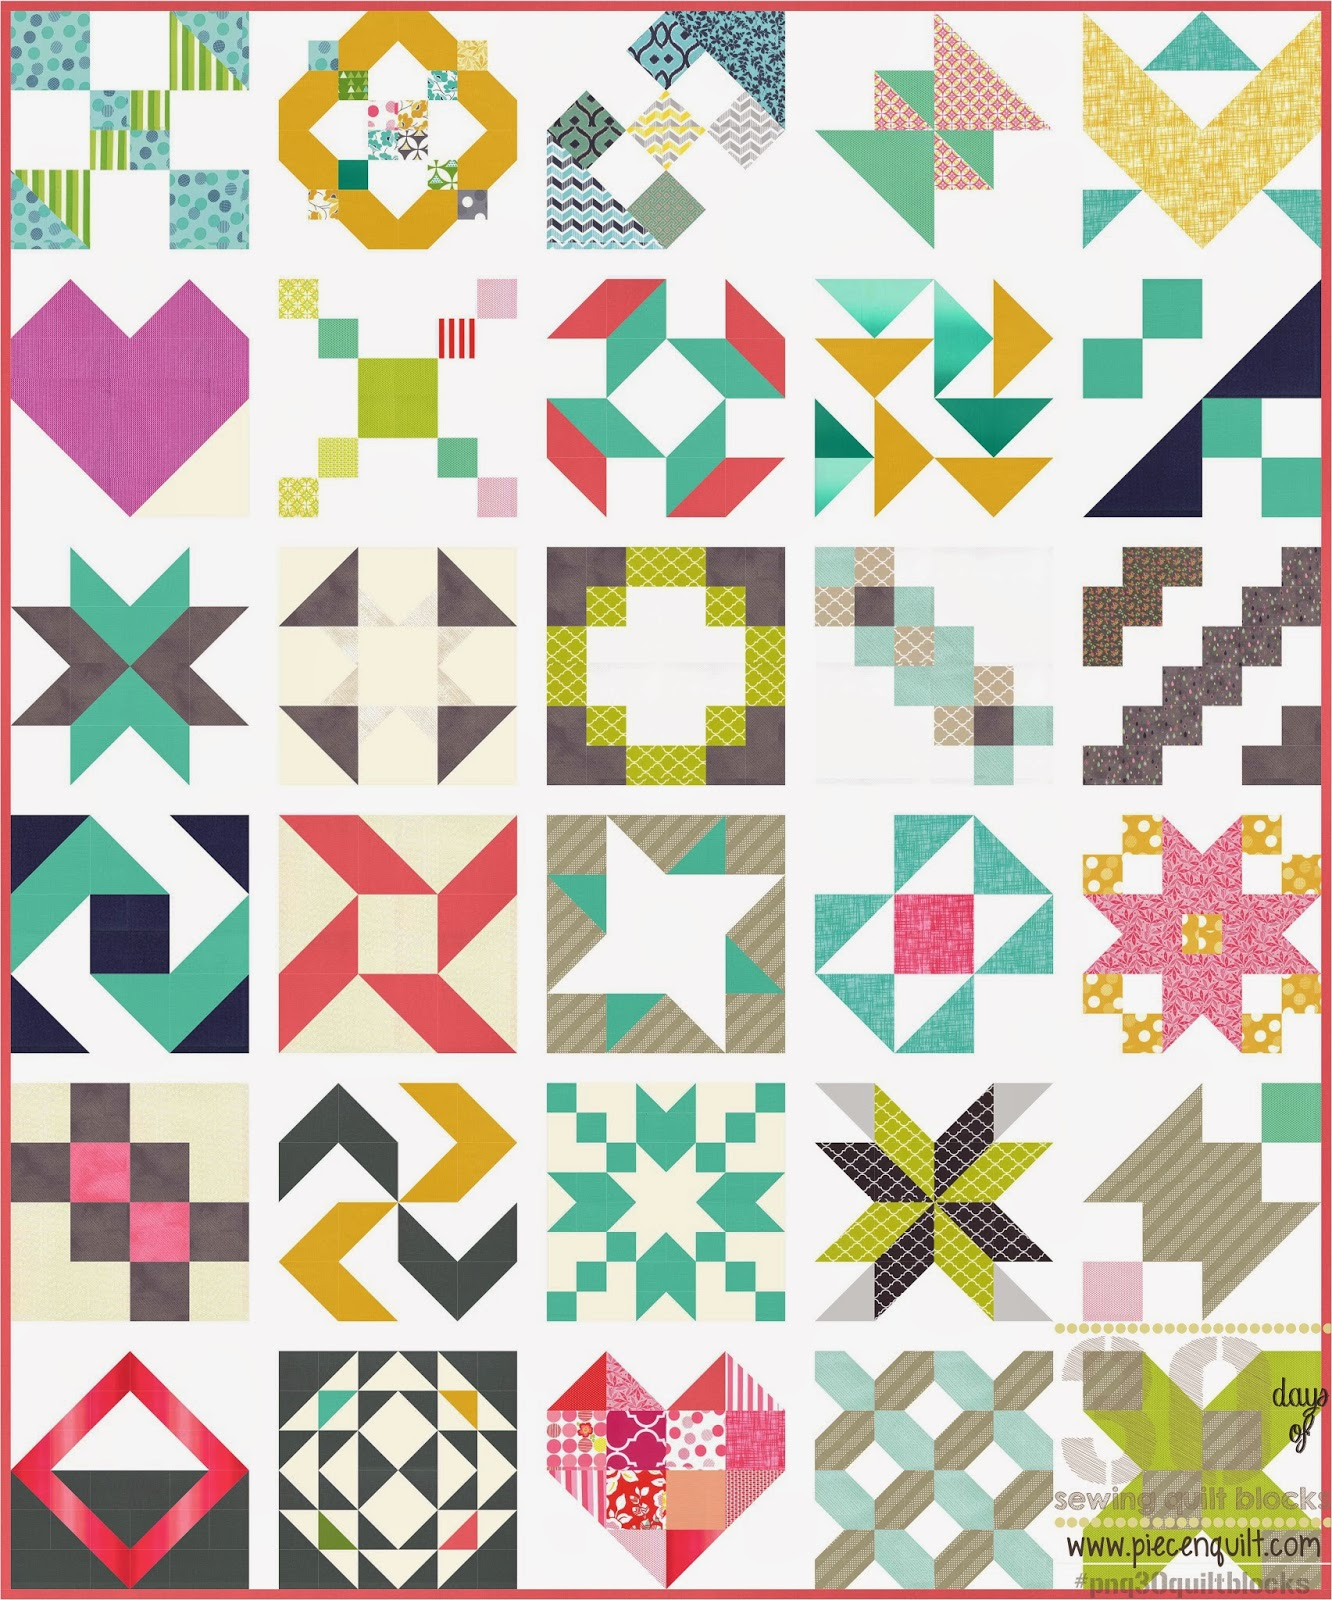 Piece N Quilt: 30 Days of Sewing Quilt Blocks - A Sampler ...